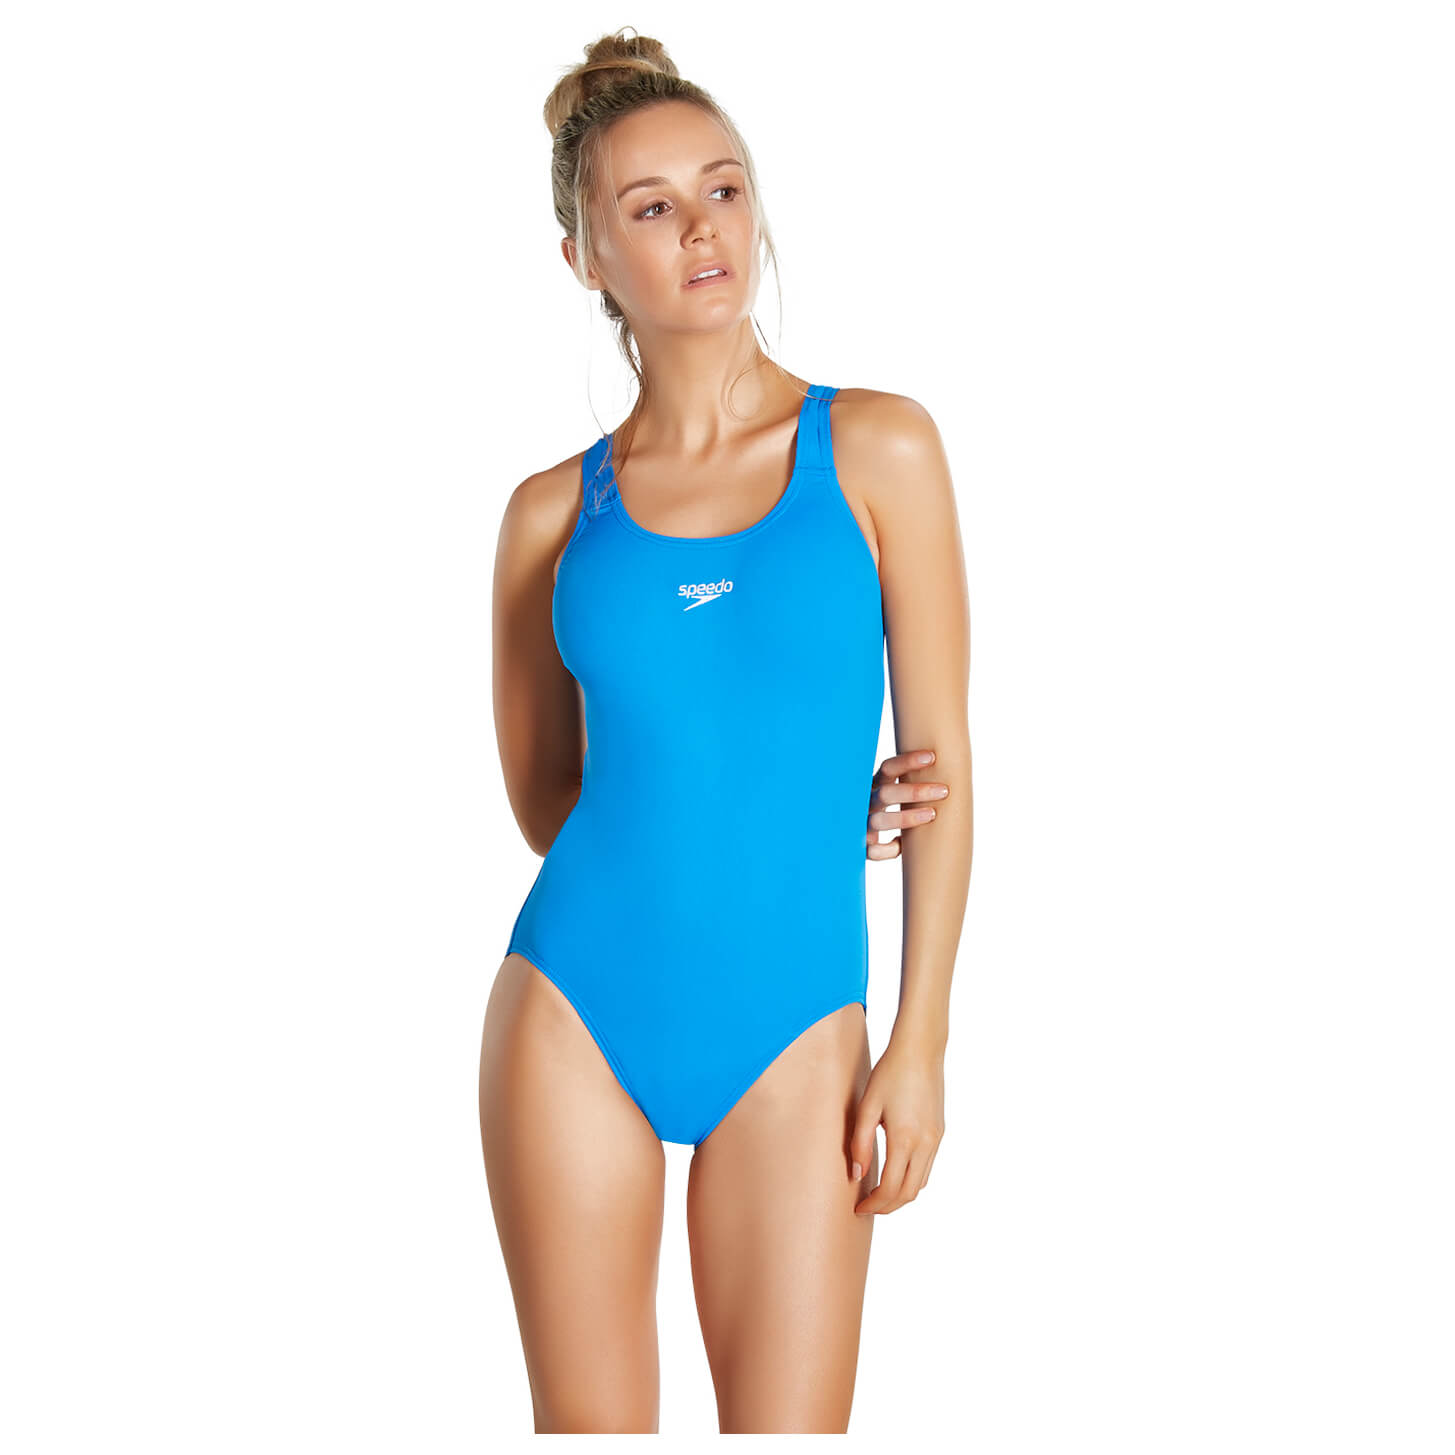 c8fbaae06e Speedo Essential Endurance+ Medalist - Swimsuit Women's | Buy online ...